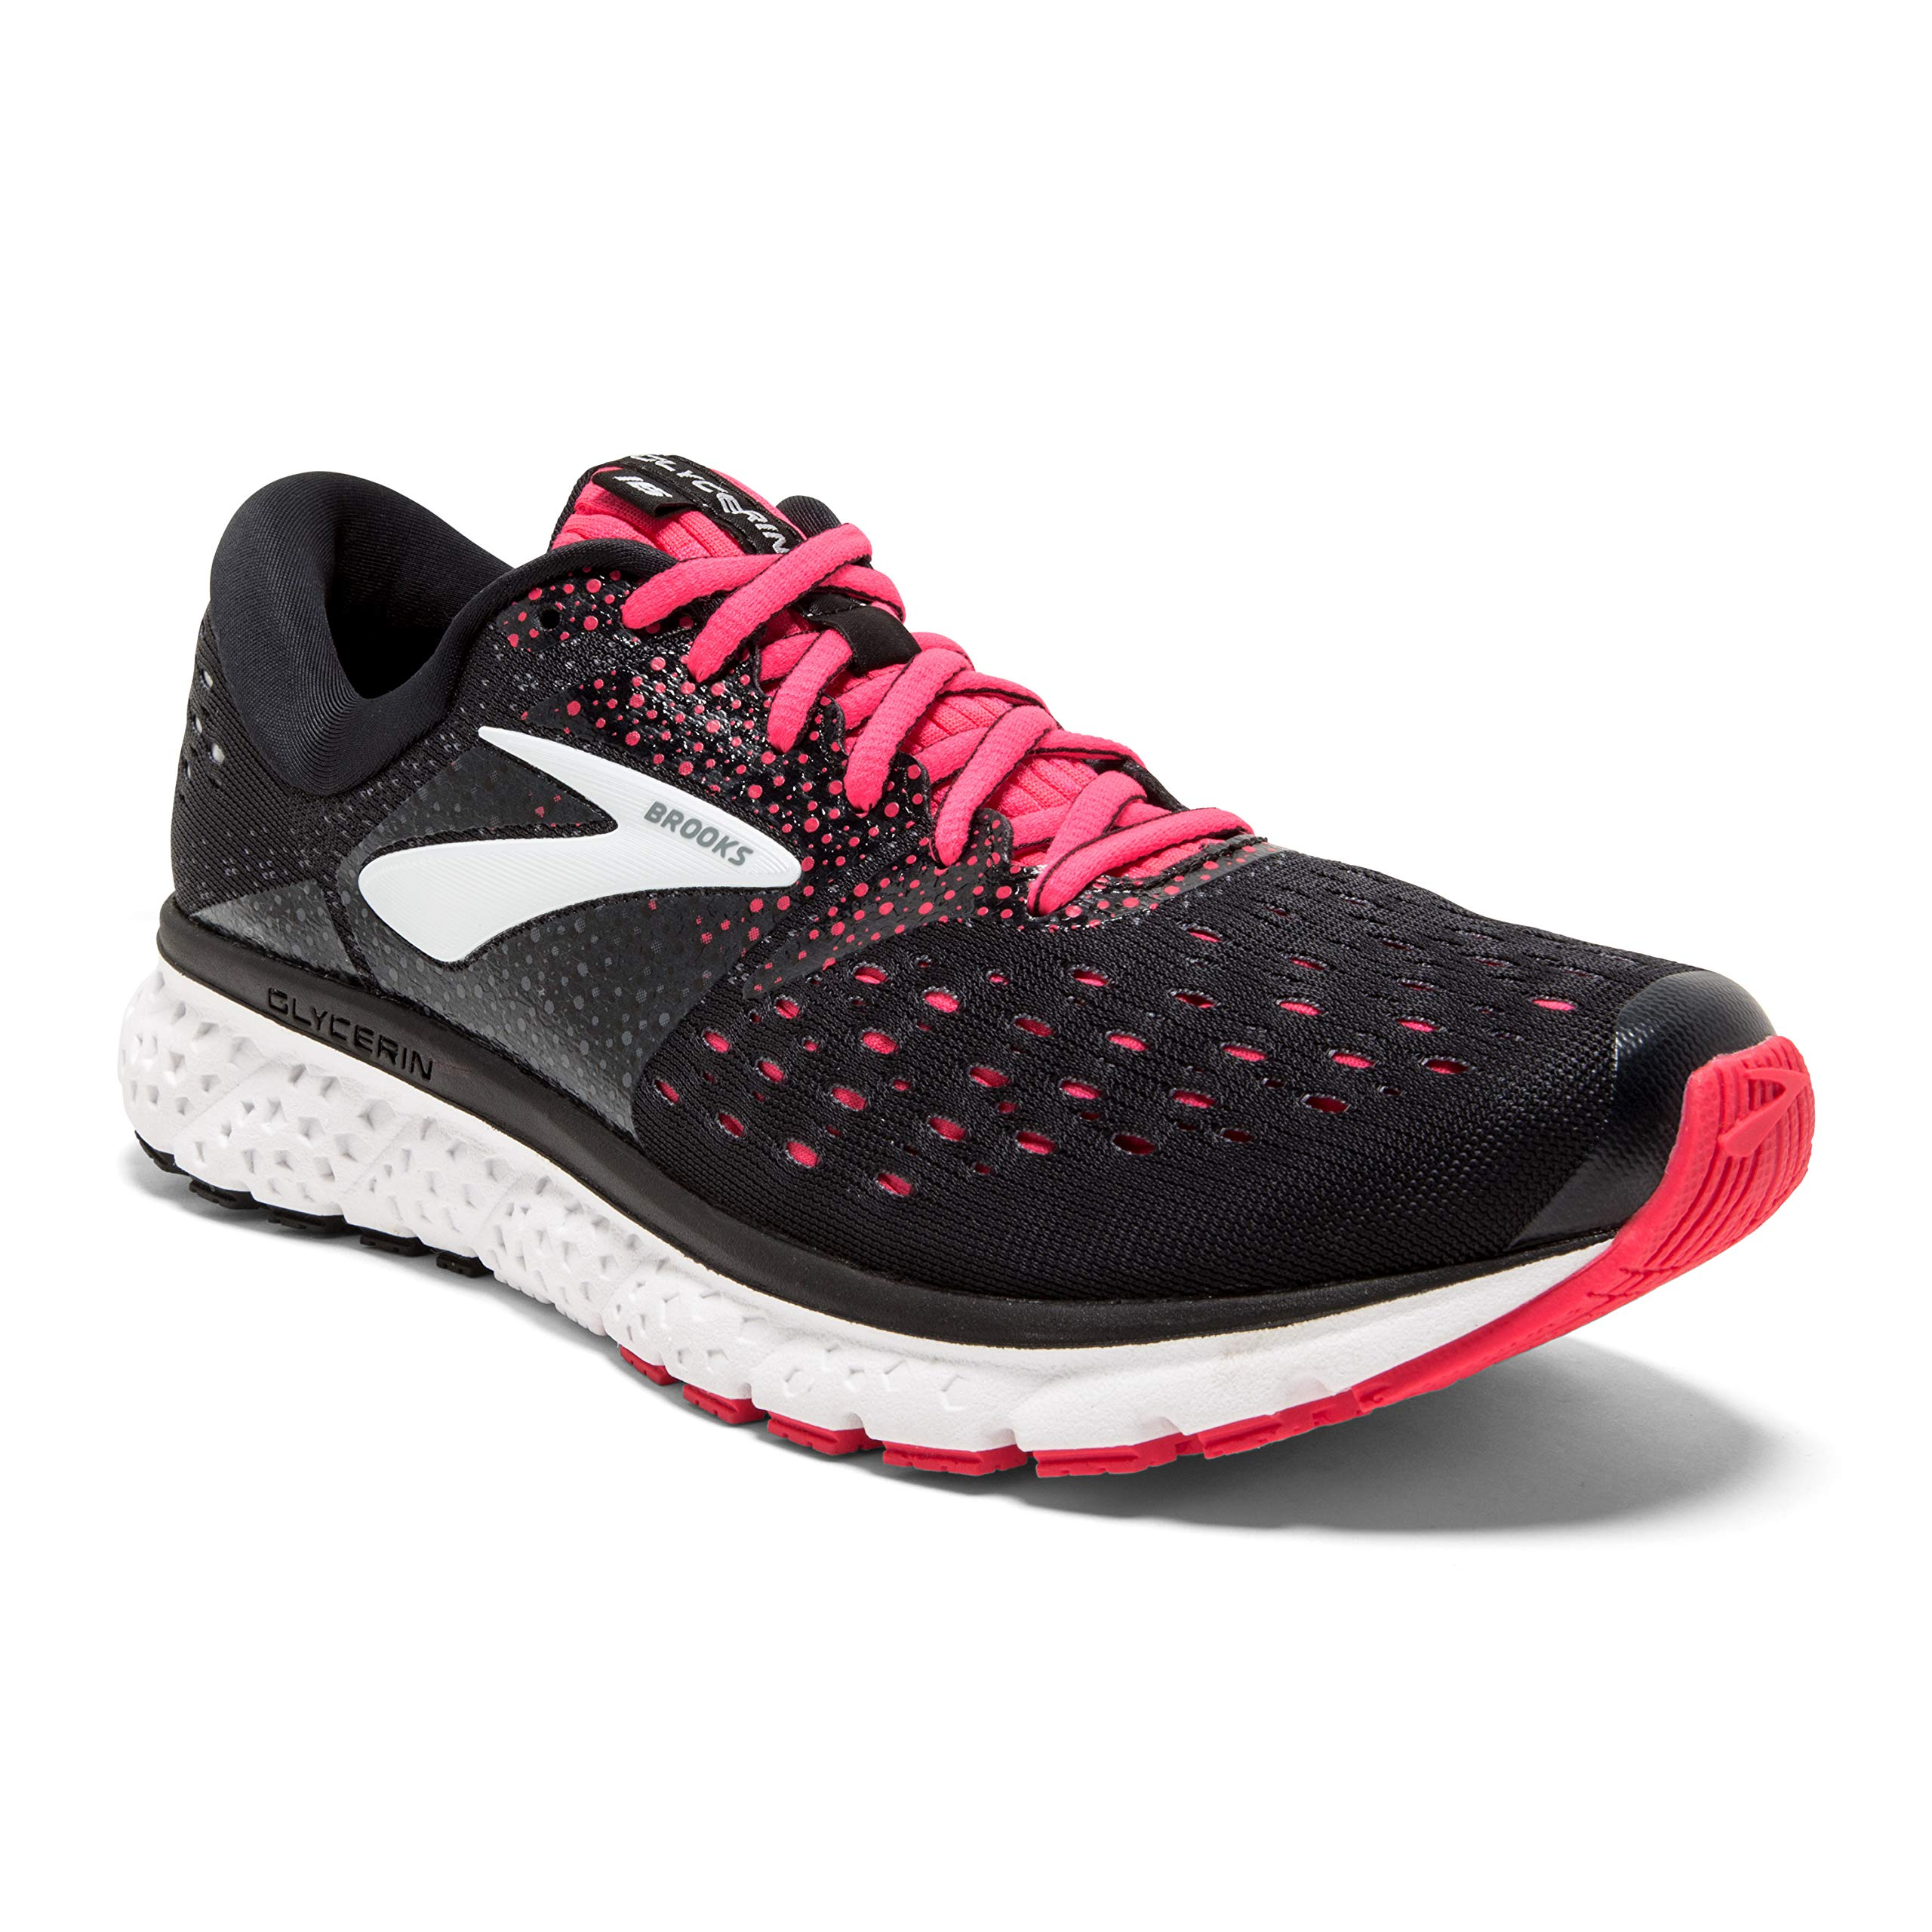 Brooks Womens Glycerin 16 - Black/Pink/Grey - B - 6.5 by Brooks